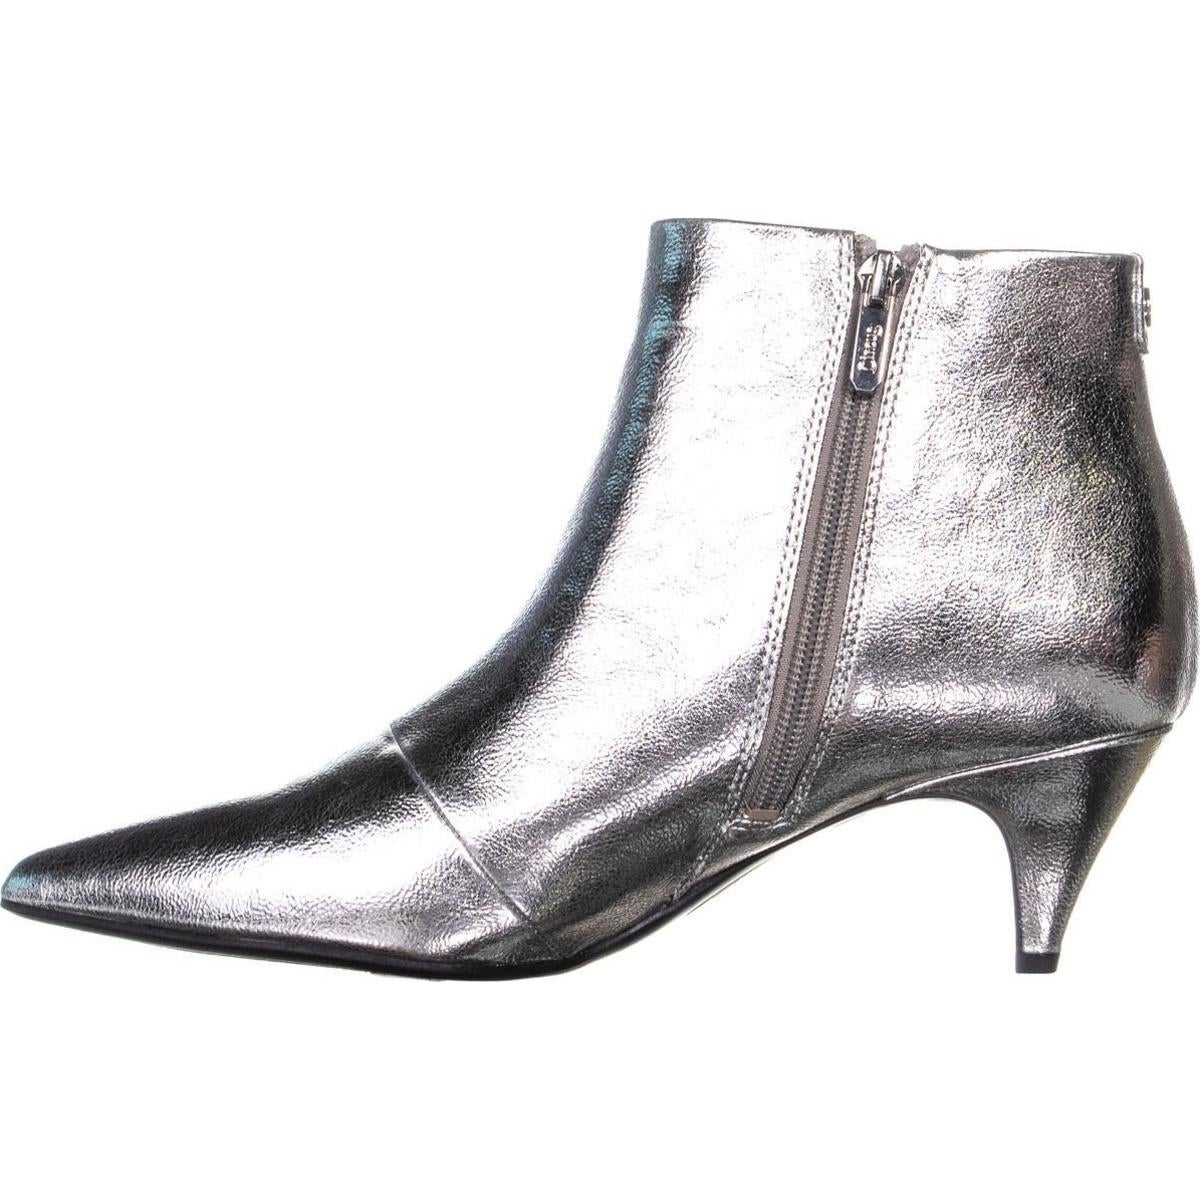 3b5aabb842 Shop Circus Sam Edelman Kirby Kitten Heel Ankle Boots, Soft Silver - Free  Shipping On Orders Over $45 - Overstock - 24218704